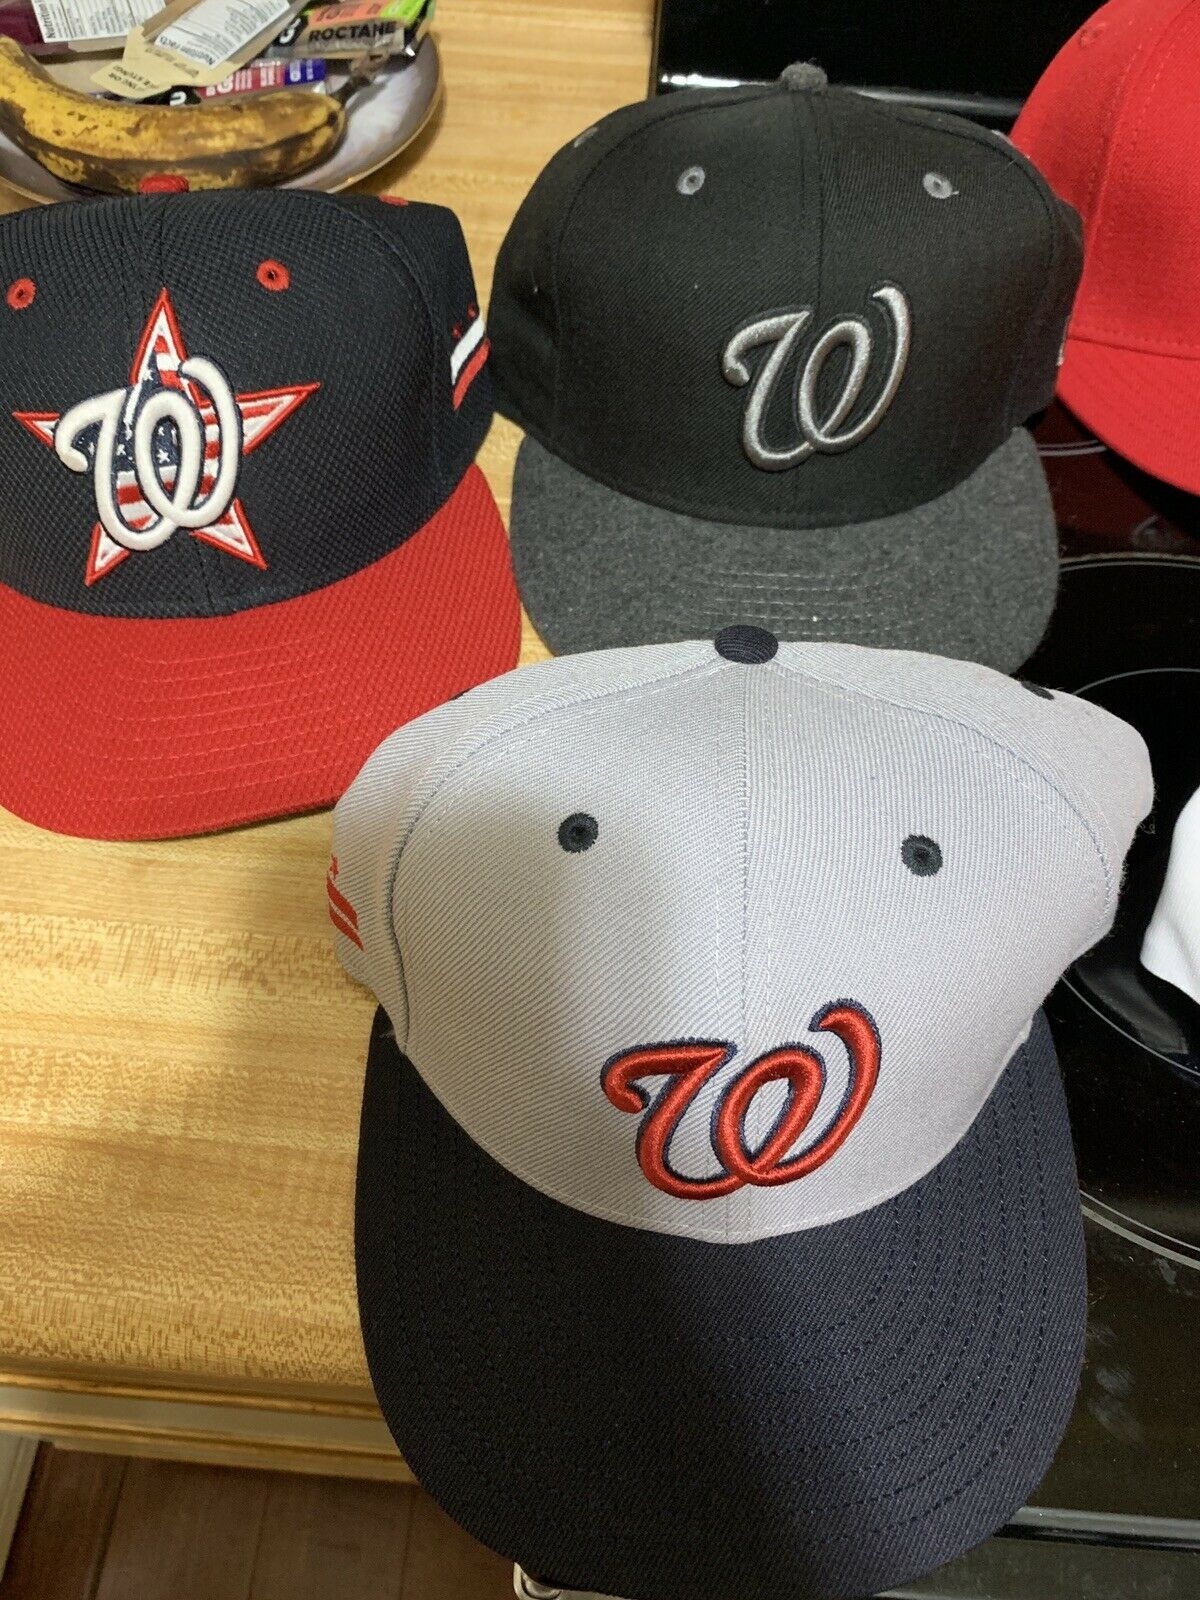 Washington Nationals, Capitals, Tampa Bay, (lot of 16 hats)